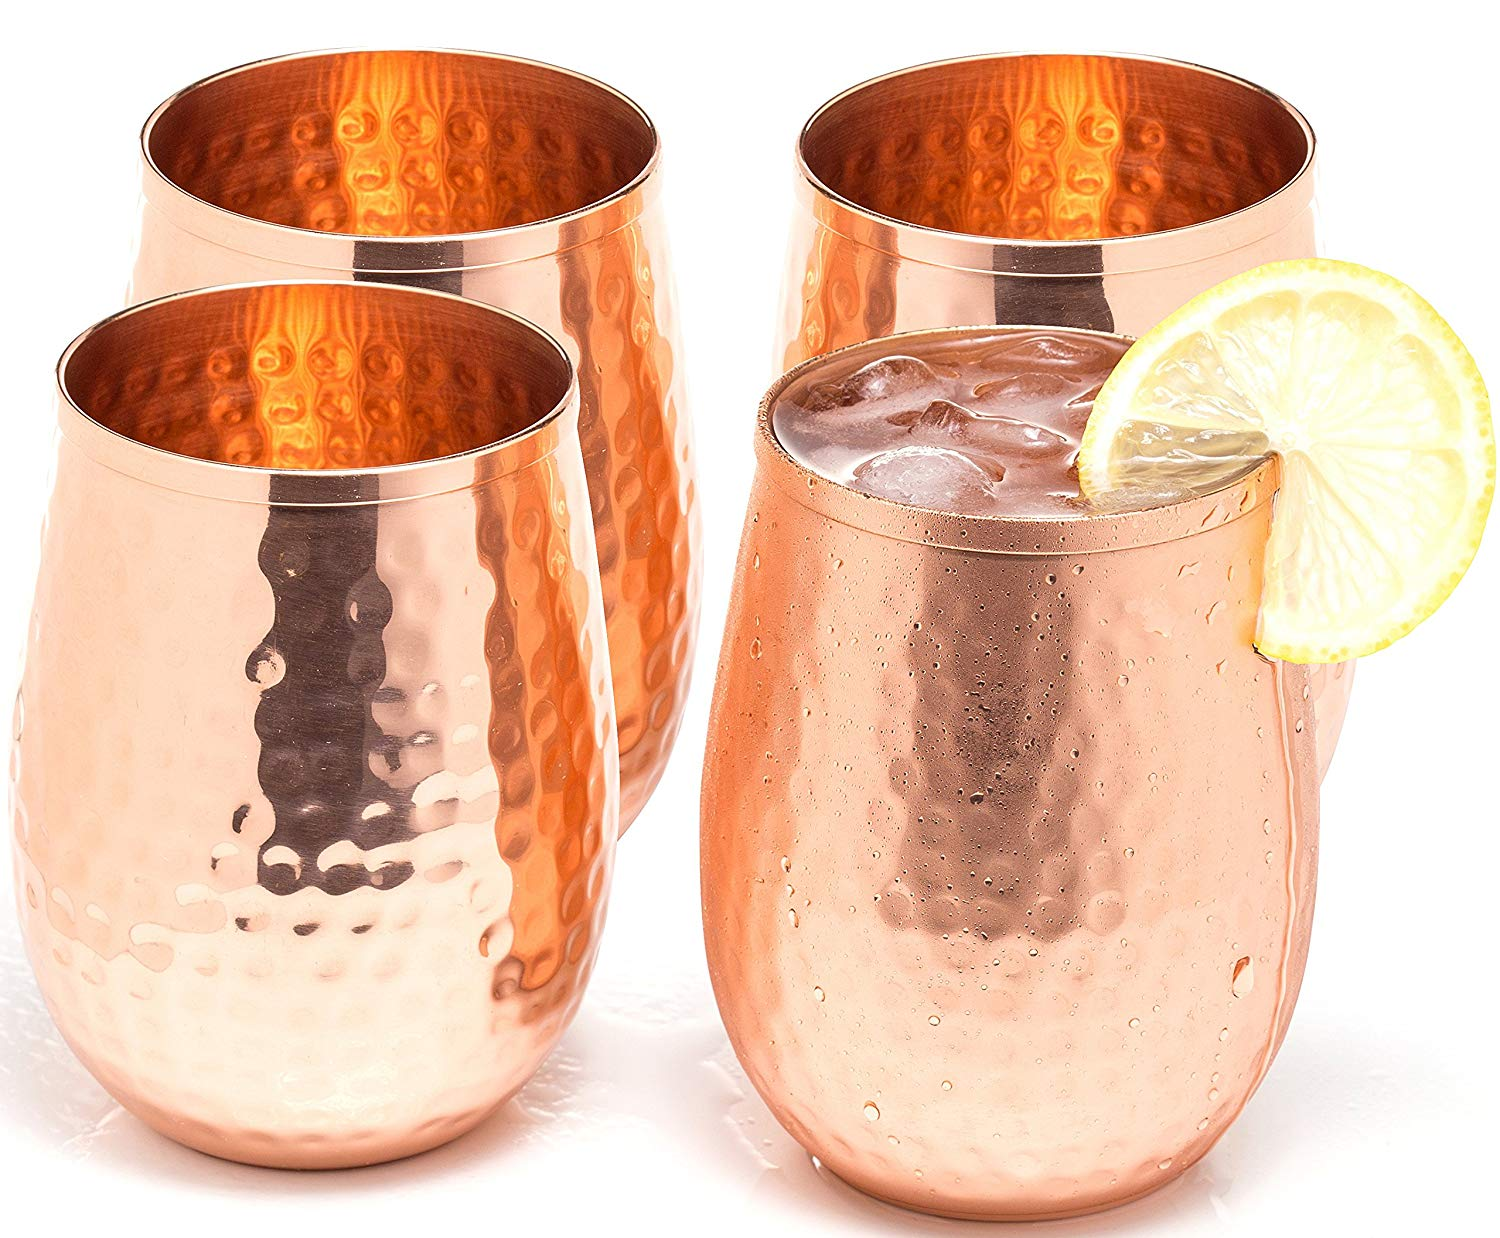 Copper wine glasses set of 4 – 17oz gleaming 100% solid hammered copper stemless wine cups – a perfect gift set for men and women – great copper tumblers for red or white wine and Moscow mules.